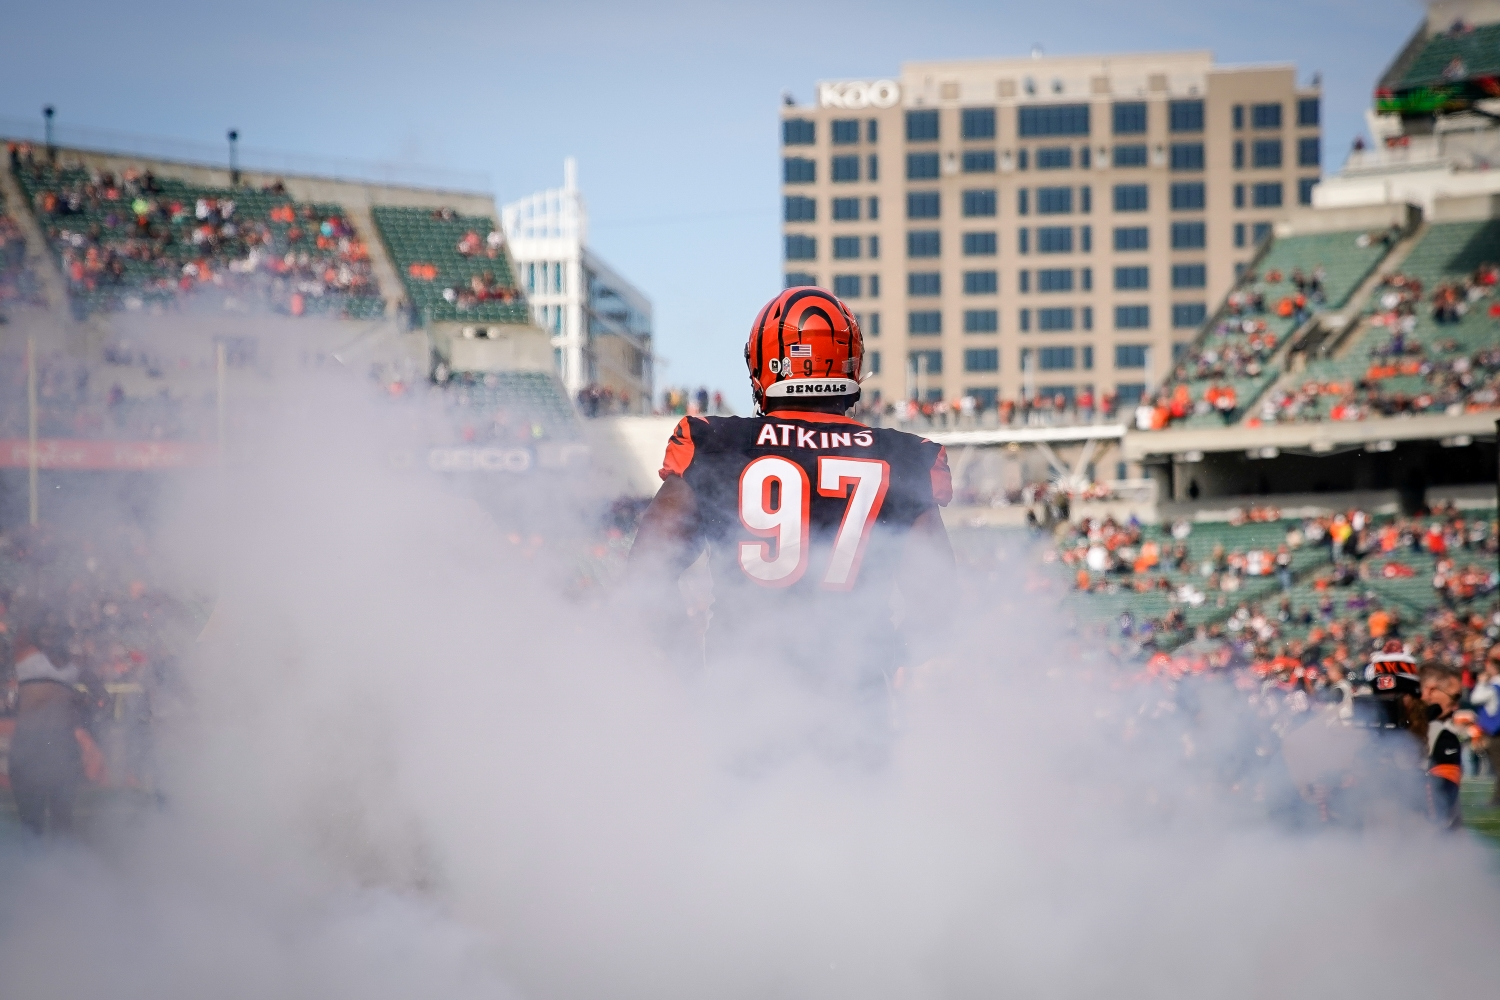 The Cincinnati Bengals Are Officially Parting Ways With a Beloved Icon and Future NFL Hall of Famer